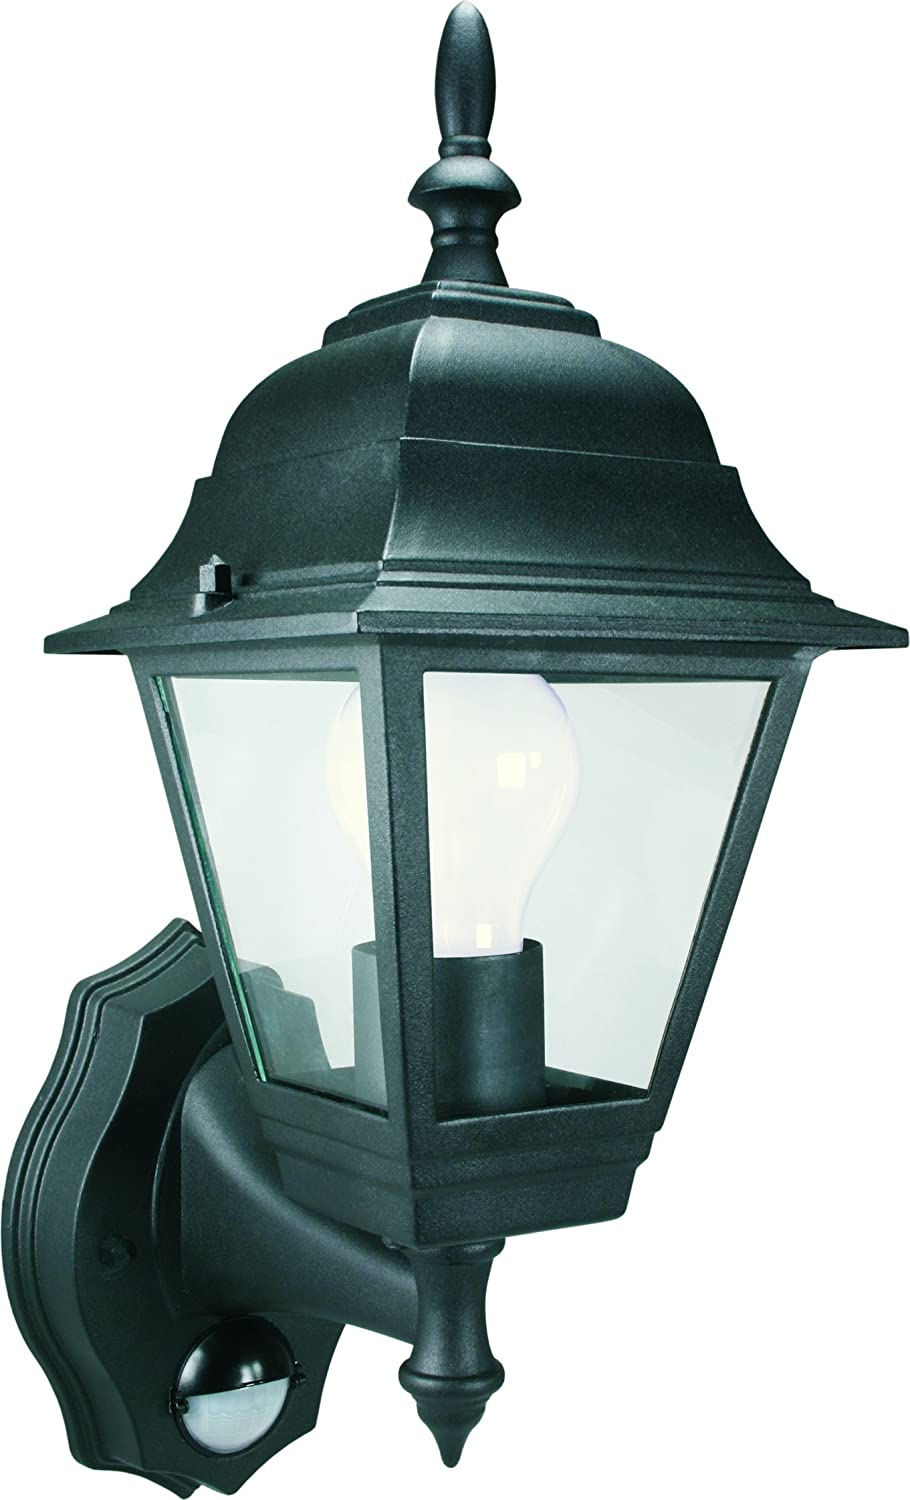 Smartwares Es94 4 Panel Wall Lantern With Pir Motion Detector 100 W Wiring Diagram For Outdoor L Post Light Black Garden Outdoors